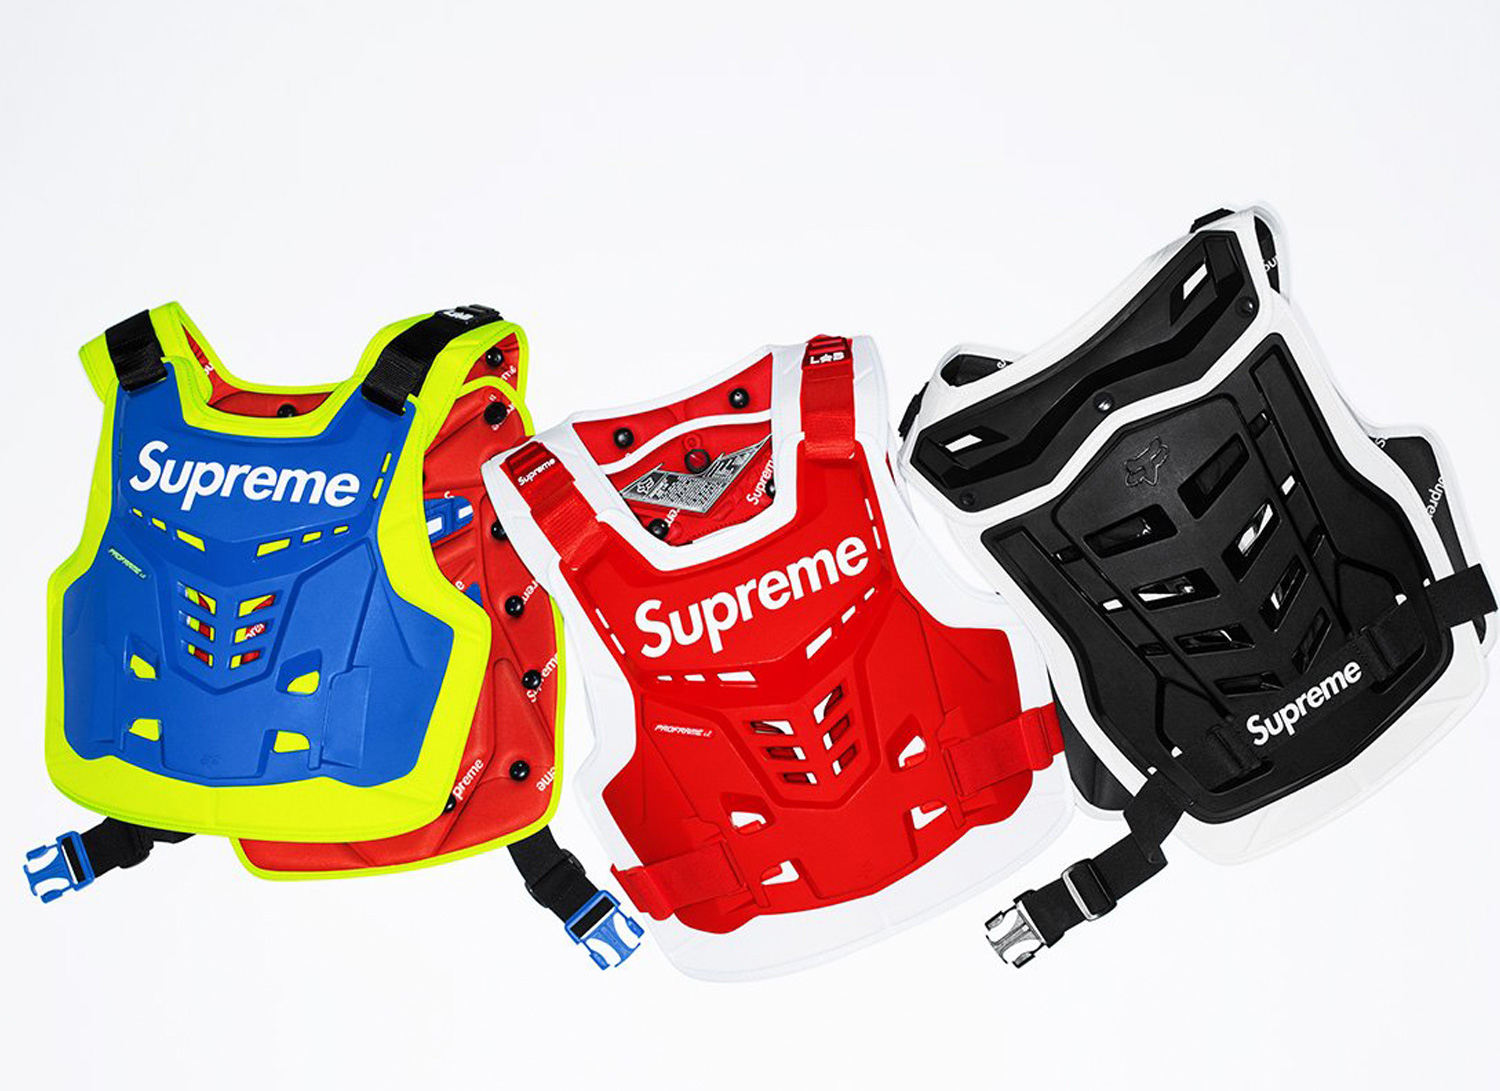 Supreme®/Fox Racing® Proframe Roost Deflector Vest